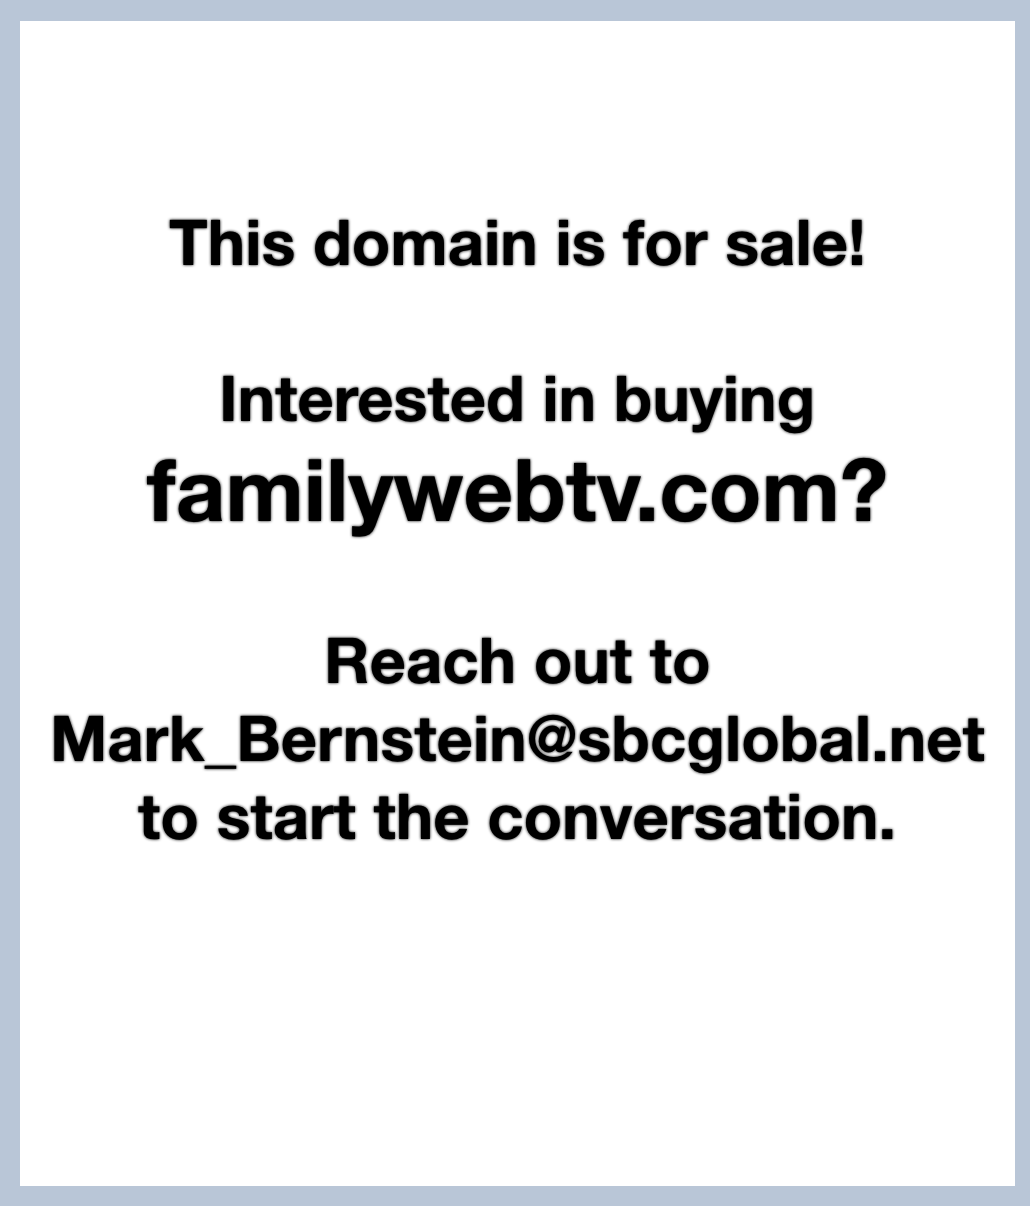 FamilyWebTV is for sale!